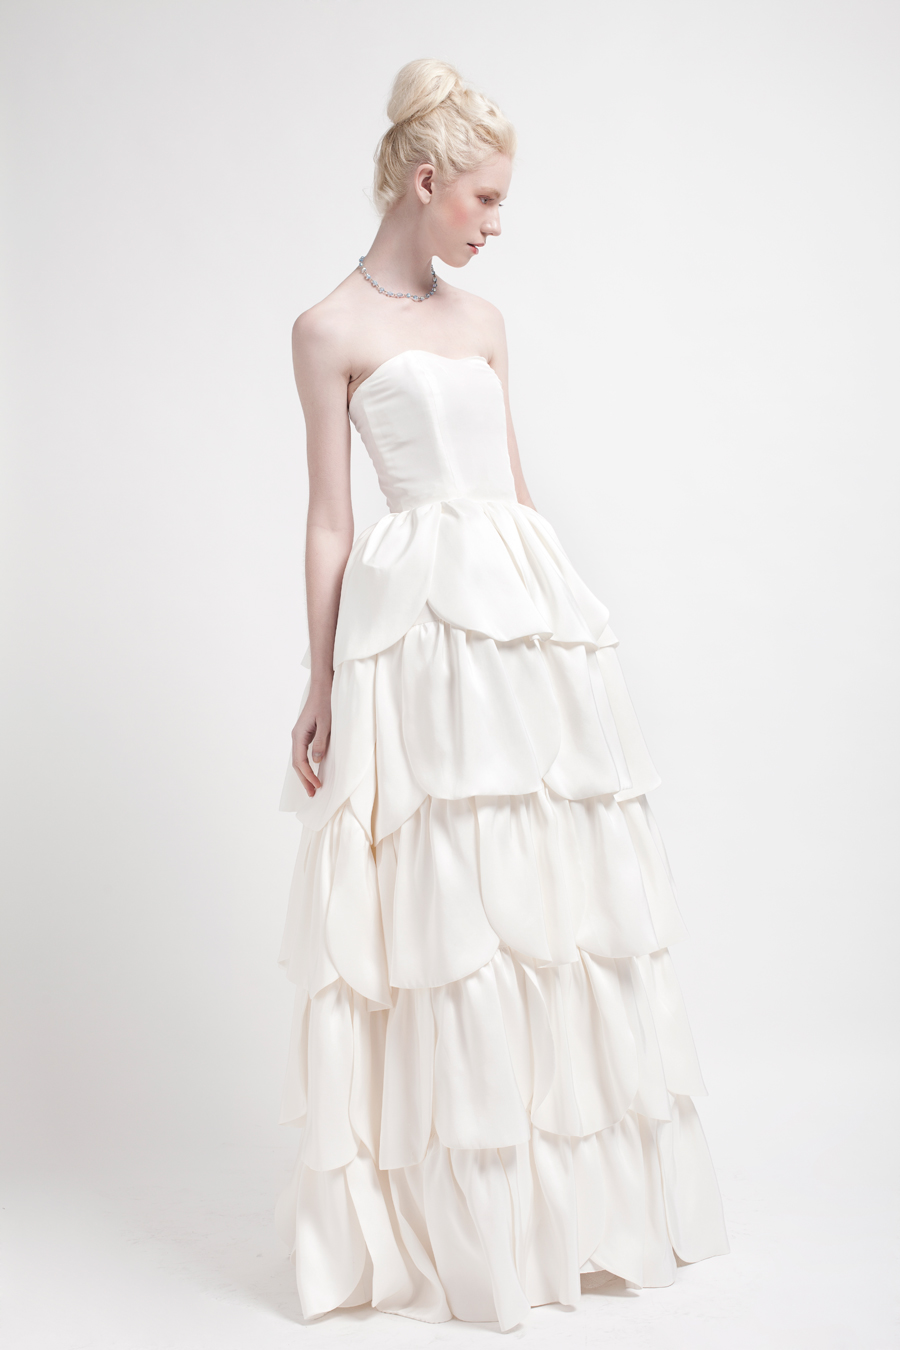 Begonia - Kelsey Genna Debut Bridal Collection